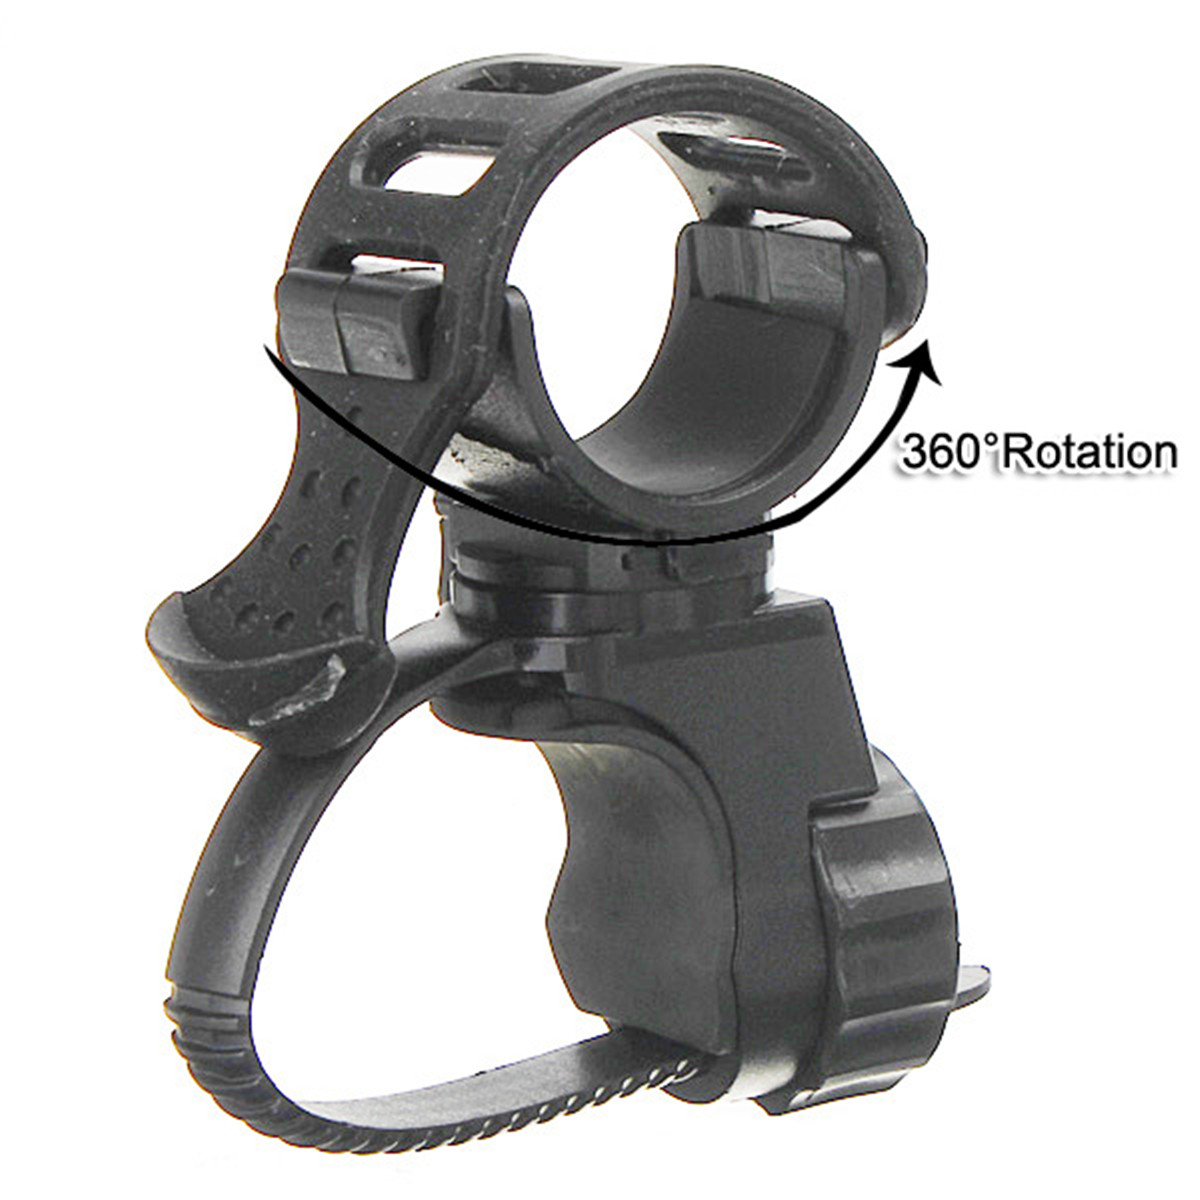 360 Rotation Cycling Bike Flashlight Bracket Mount Holder Lamp Light Clamp Clip